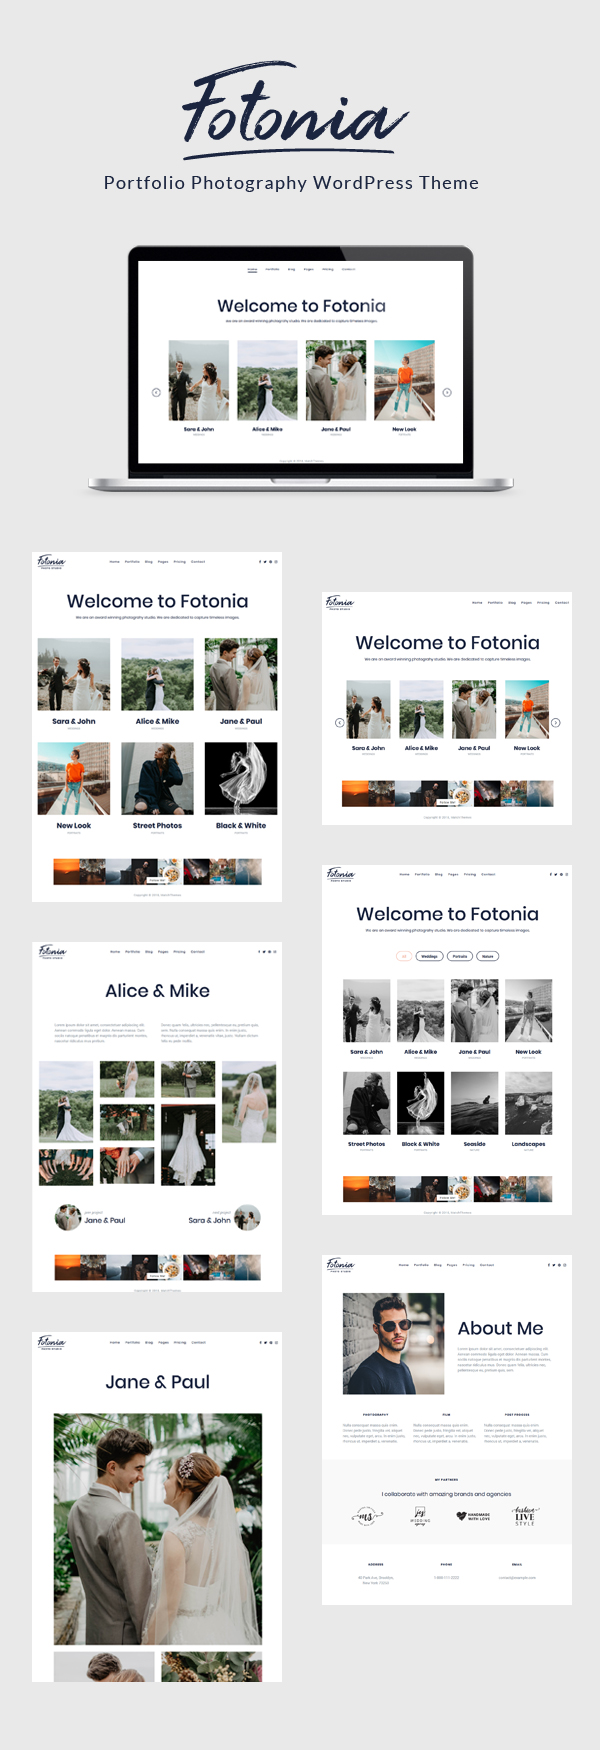 Fotonia - Portfolio Photography Theme for WordPress - 1